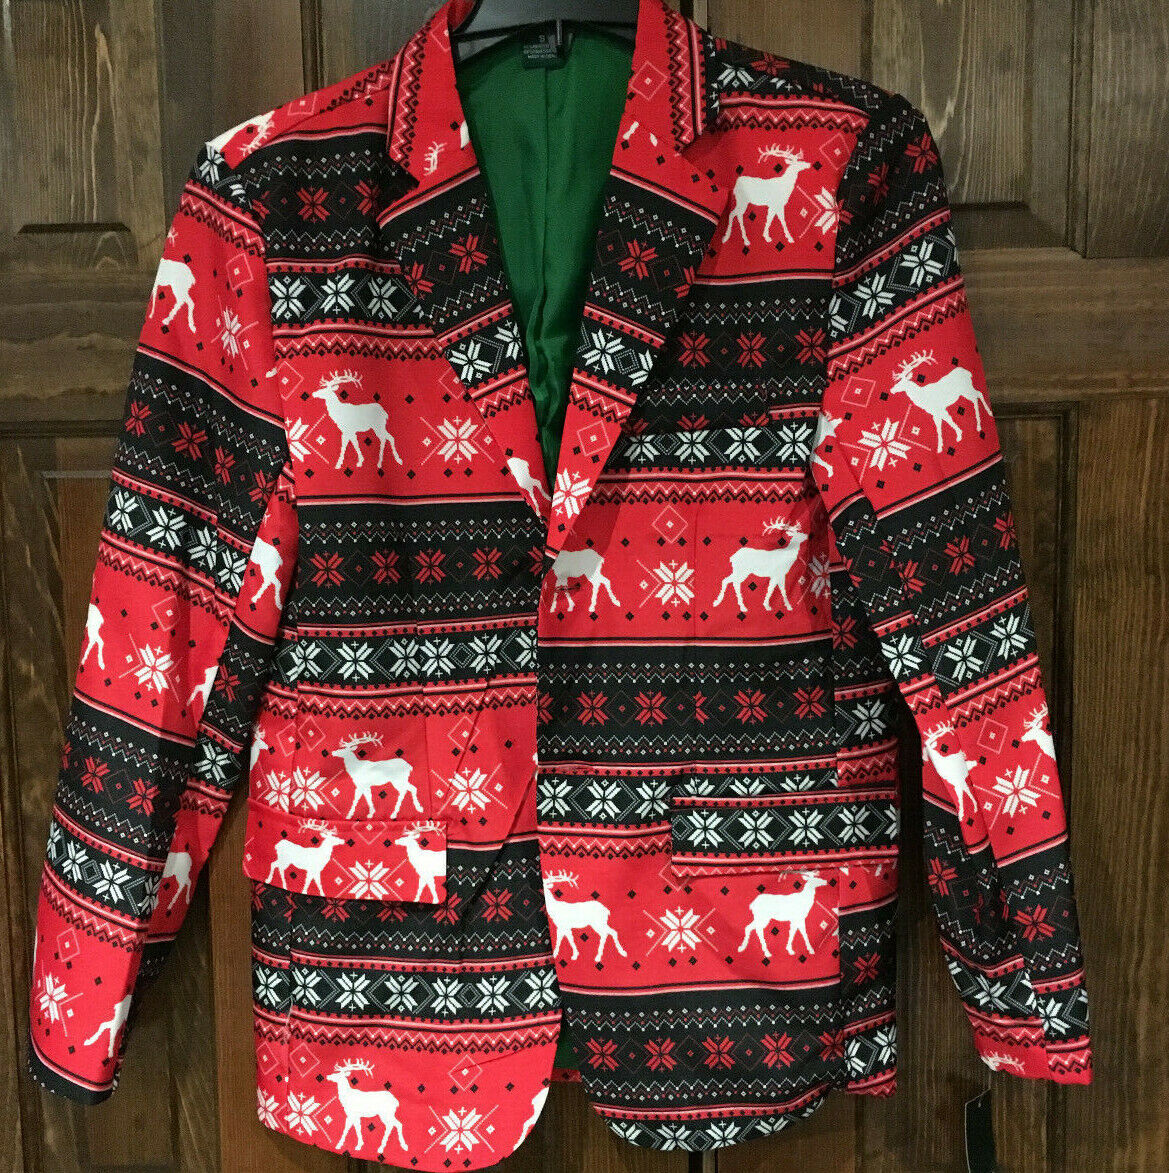 bb612d1f21 HOLIDAY PARTY Men's Small Christmas Blazer (Reindeer & Snowflake Pattern)  New